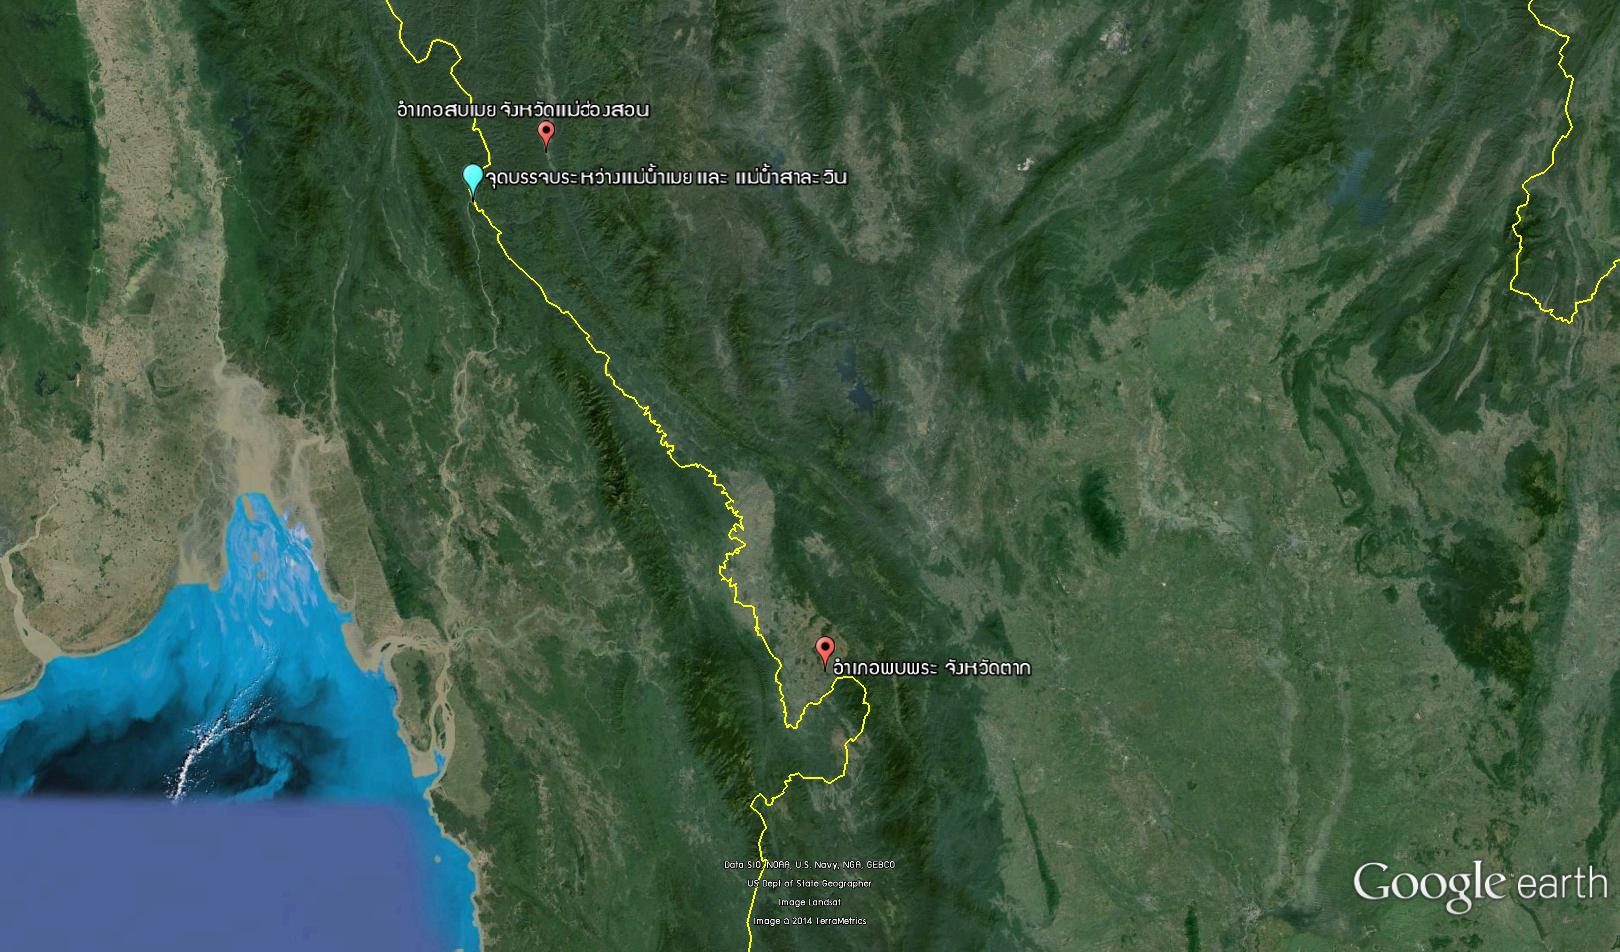 Th_Moei-River-Google Earth